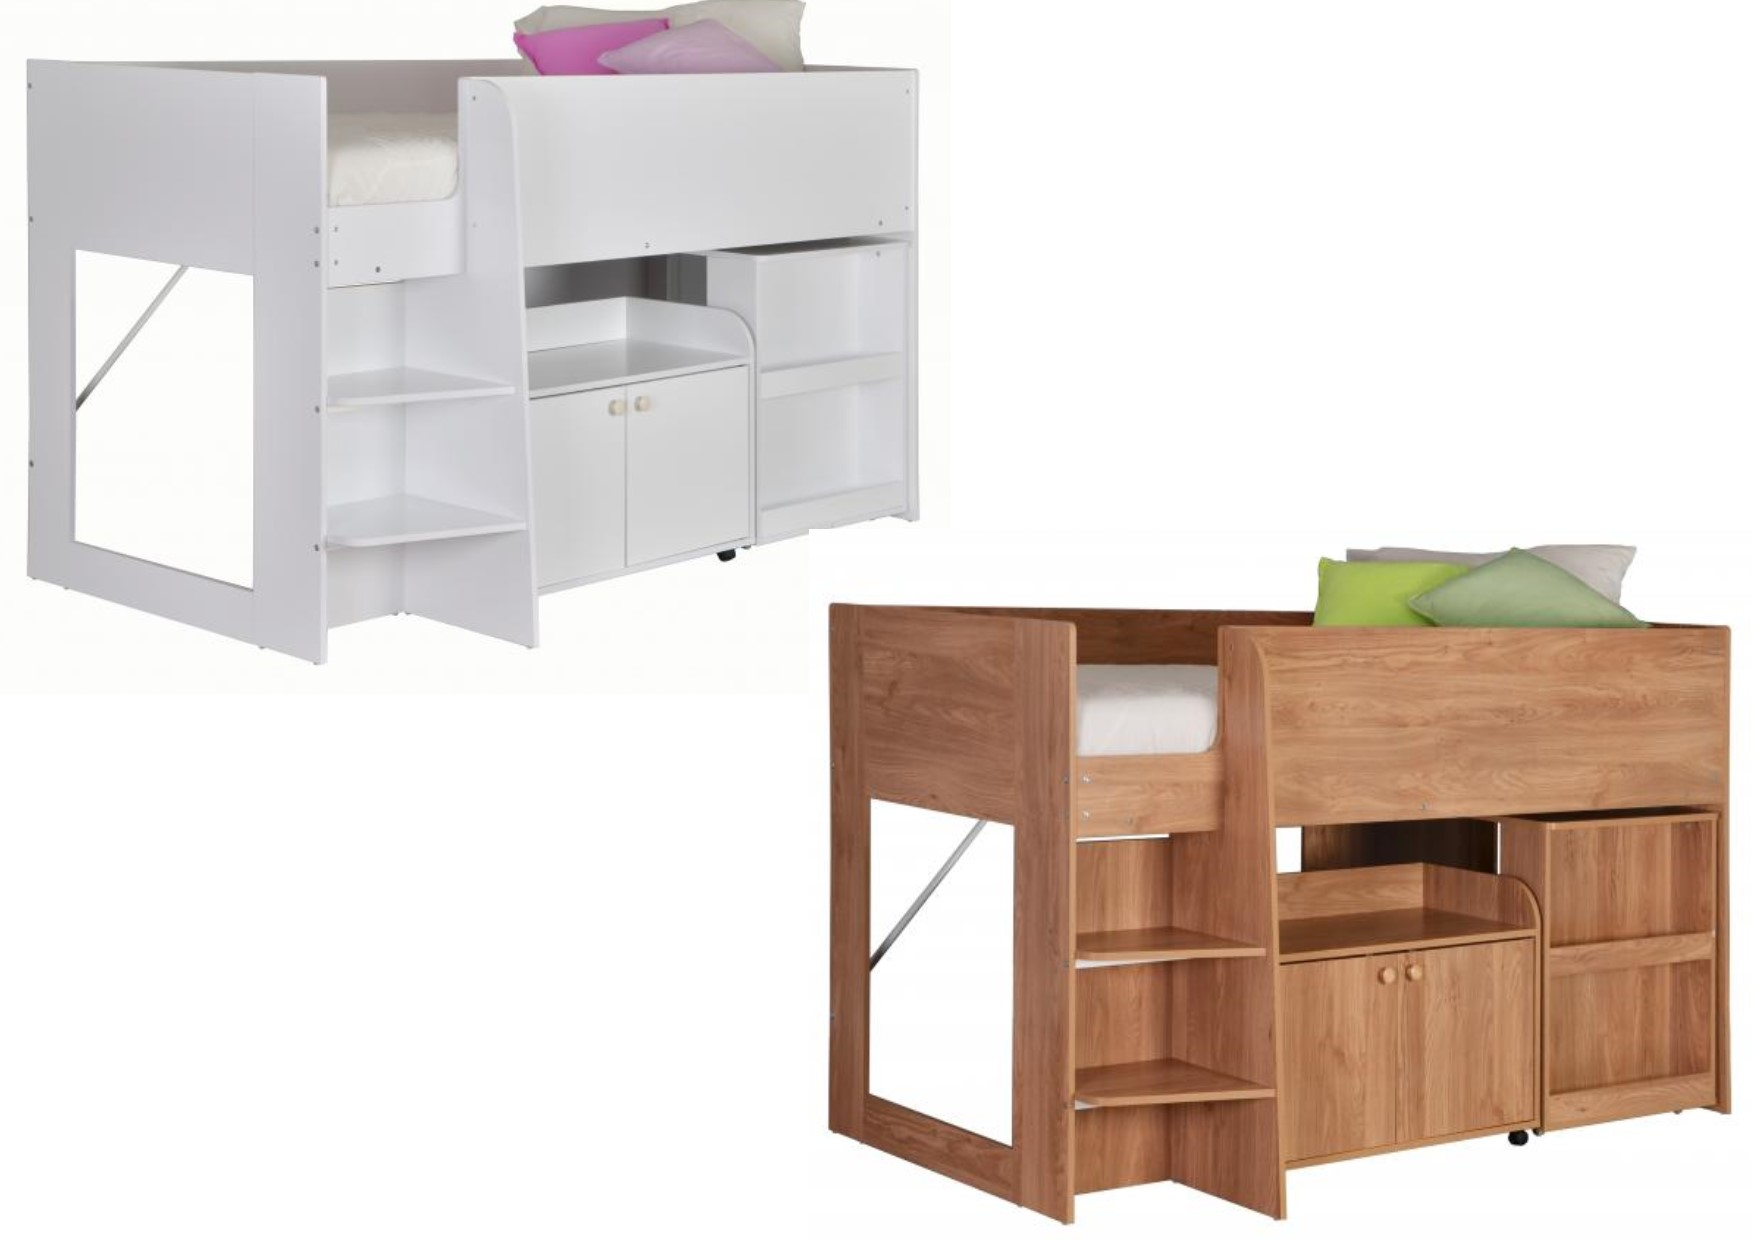 Astro Study Bunk Storage Cupboard Pull Out Desk White Or Oak Effect